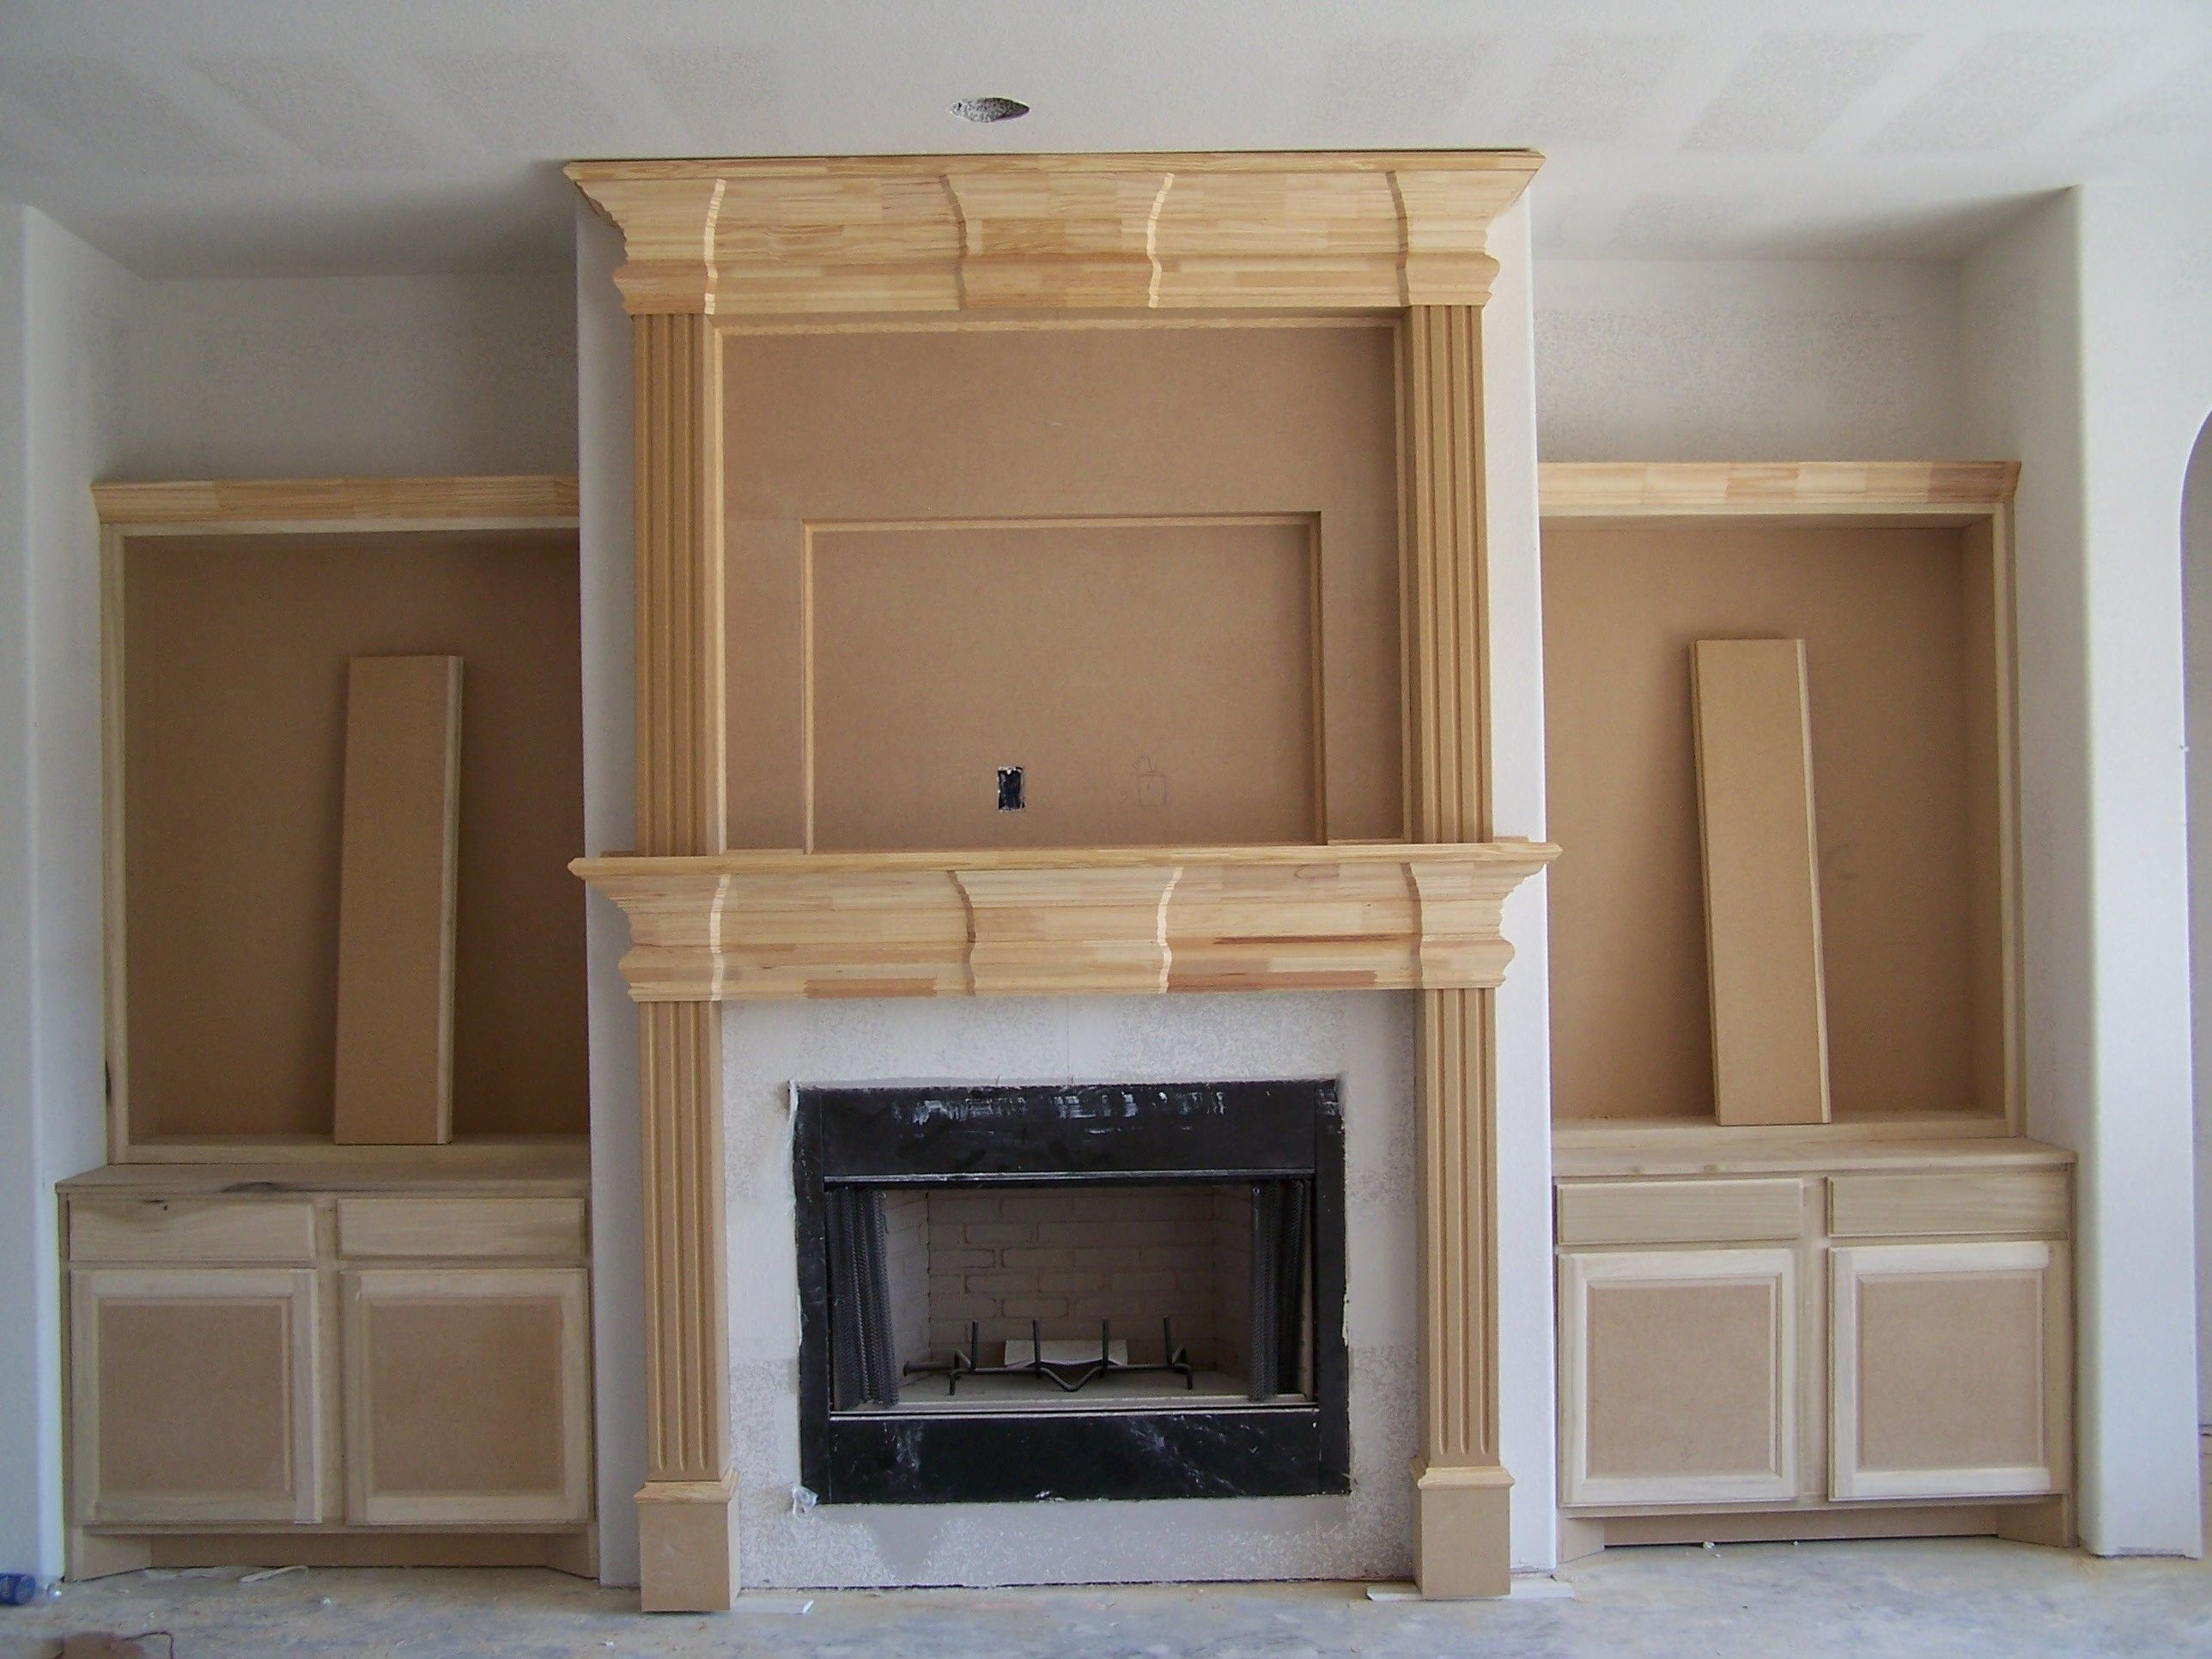 Fireplace Mantel Styles Design For Inspiring Furniture Interior Photo Surrounds Ideas Fireplace Mantel Surrounds Fireplace Bookshelves Build A Fireplace